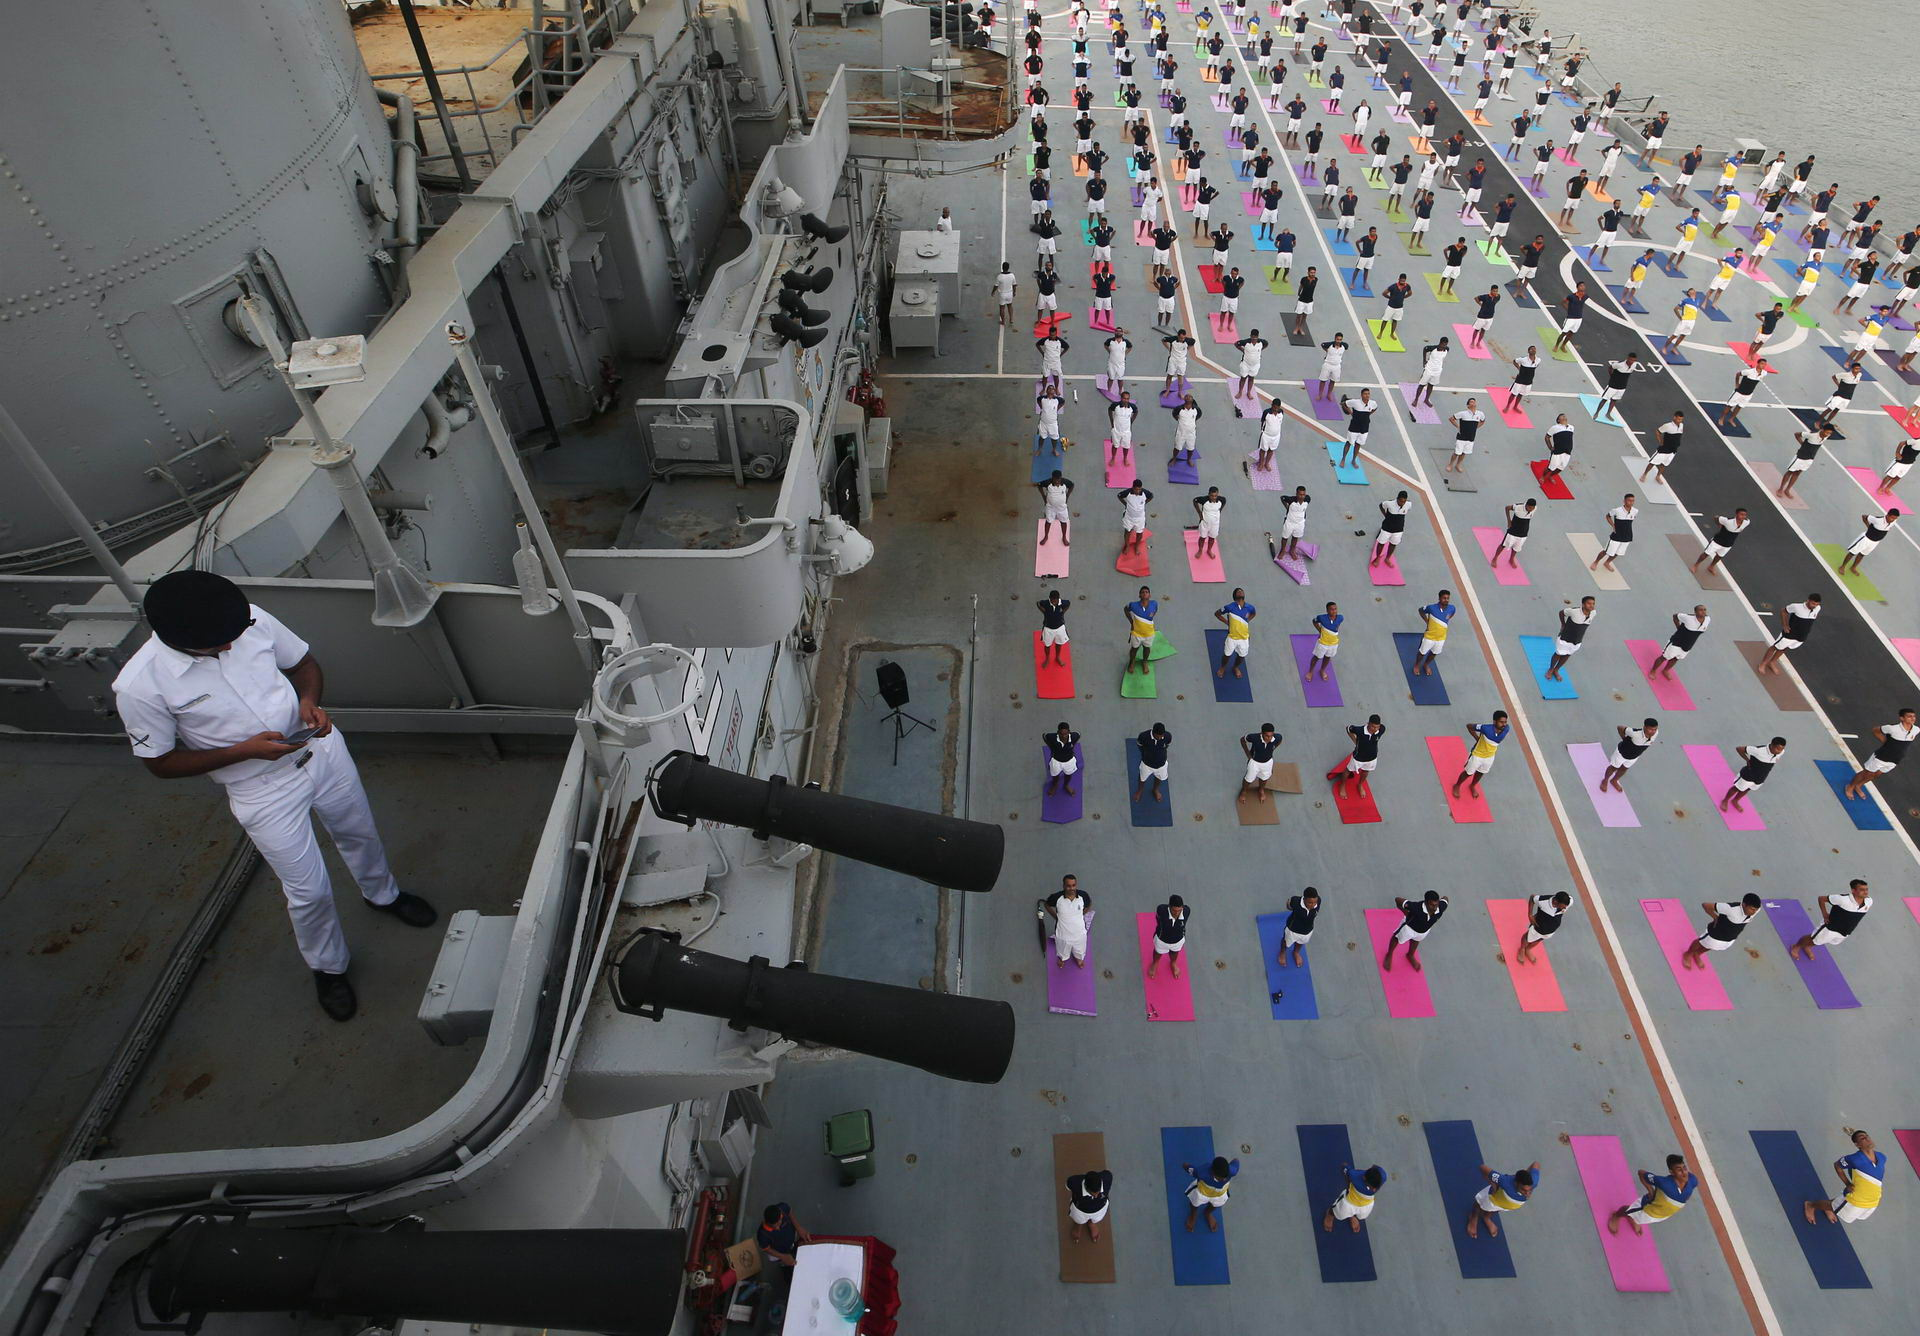 Members of Indian Navy perform yoga on the flight deck of INS Viraat, an Indian Navy's decommissioned aircraft carrier, during International Yoga Day in Mumbai